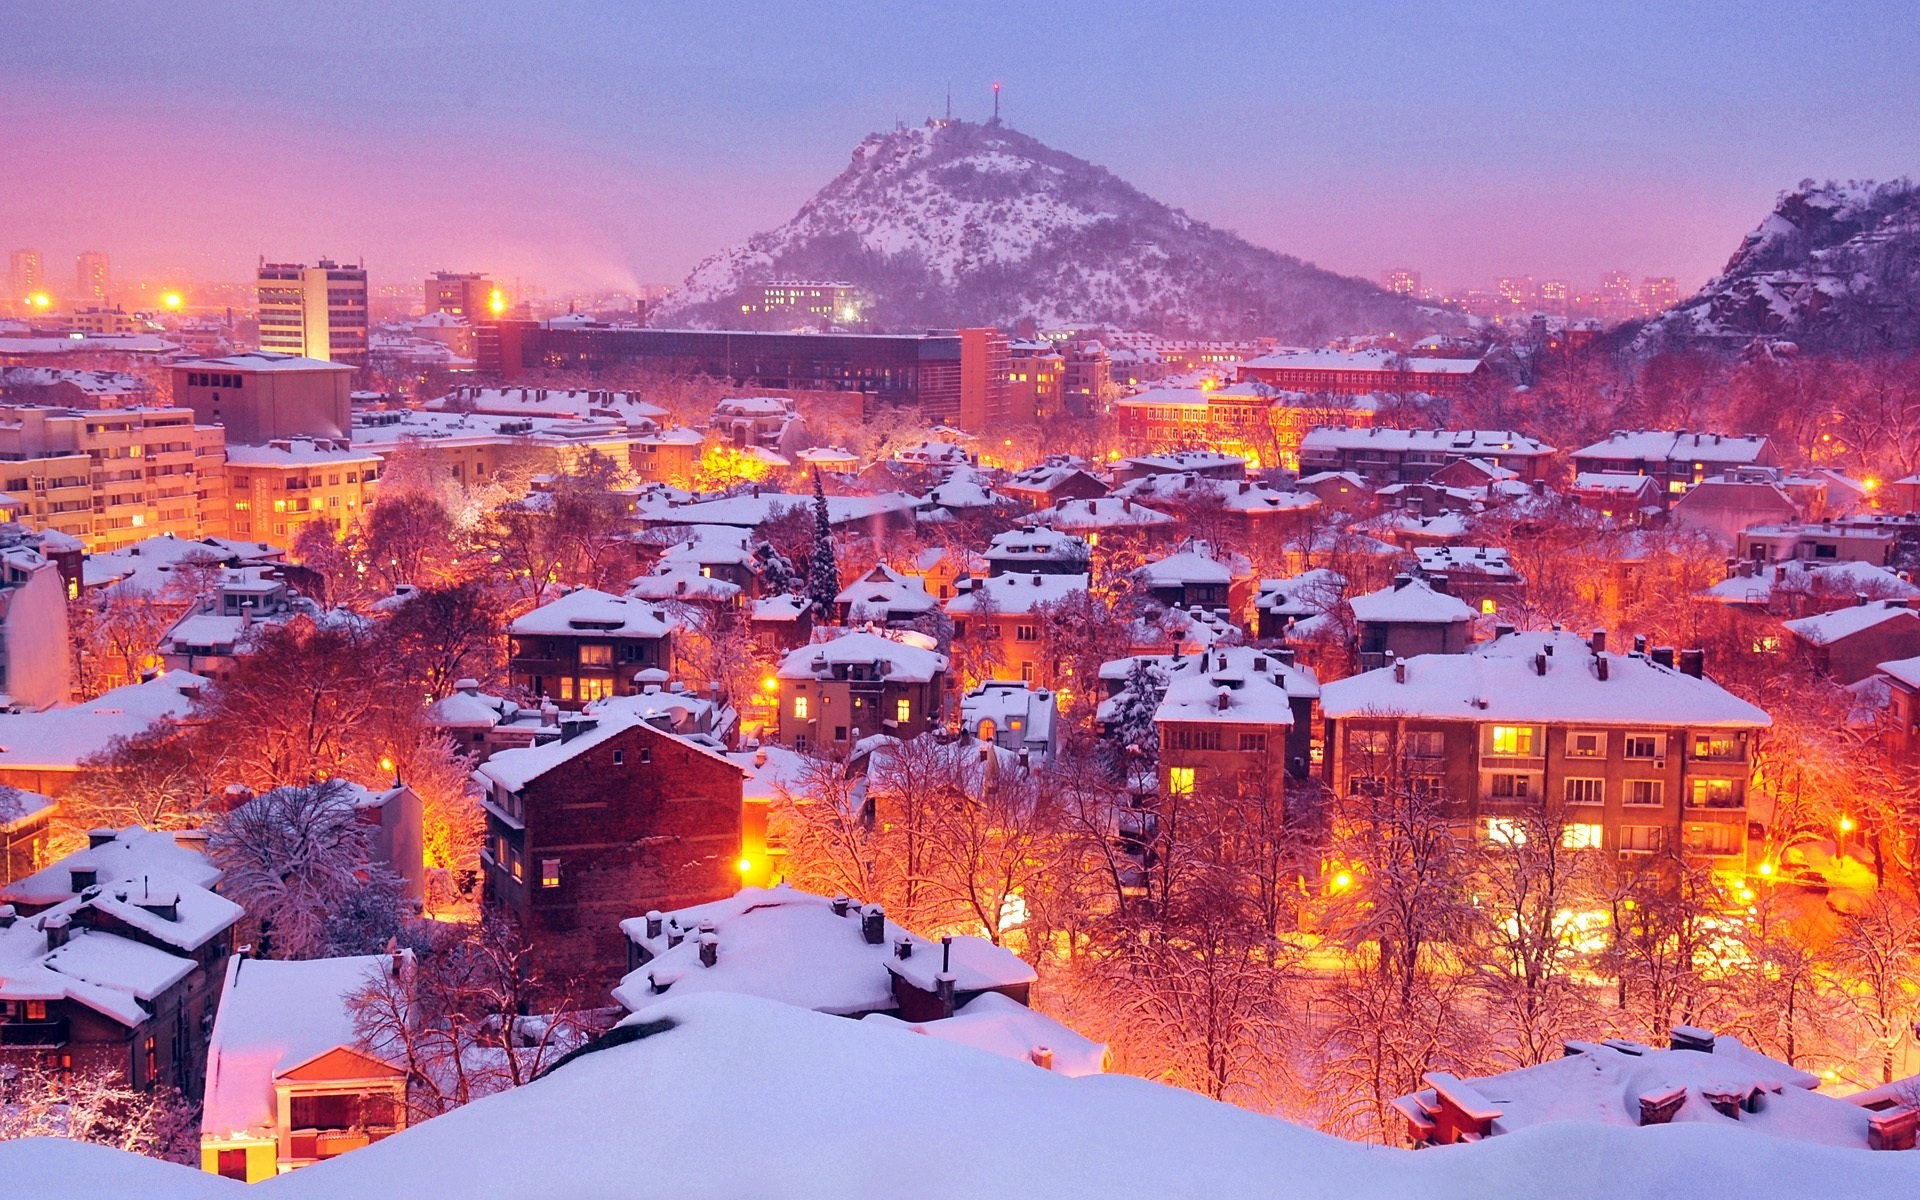 Snow Falling At Night Wallpaper Snow In The City Wallpaper 65 Images